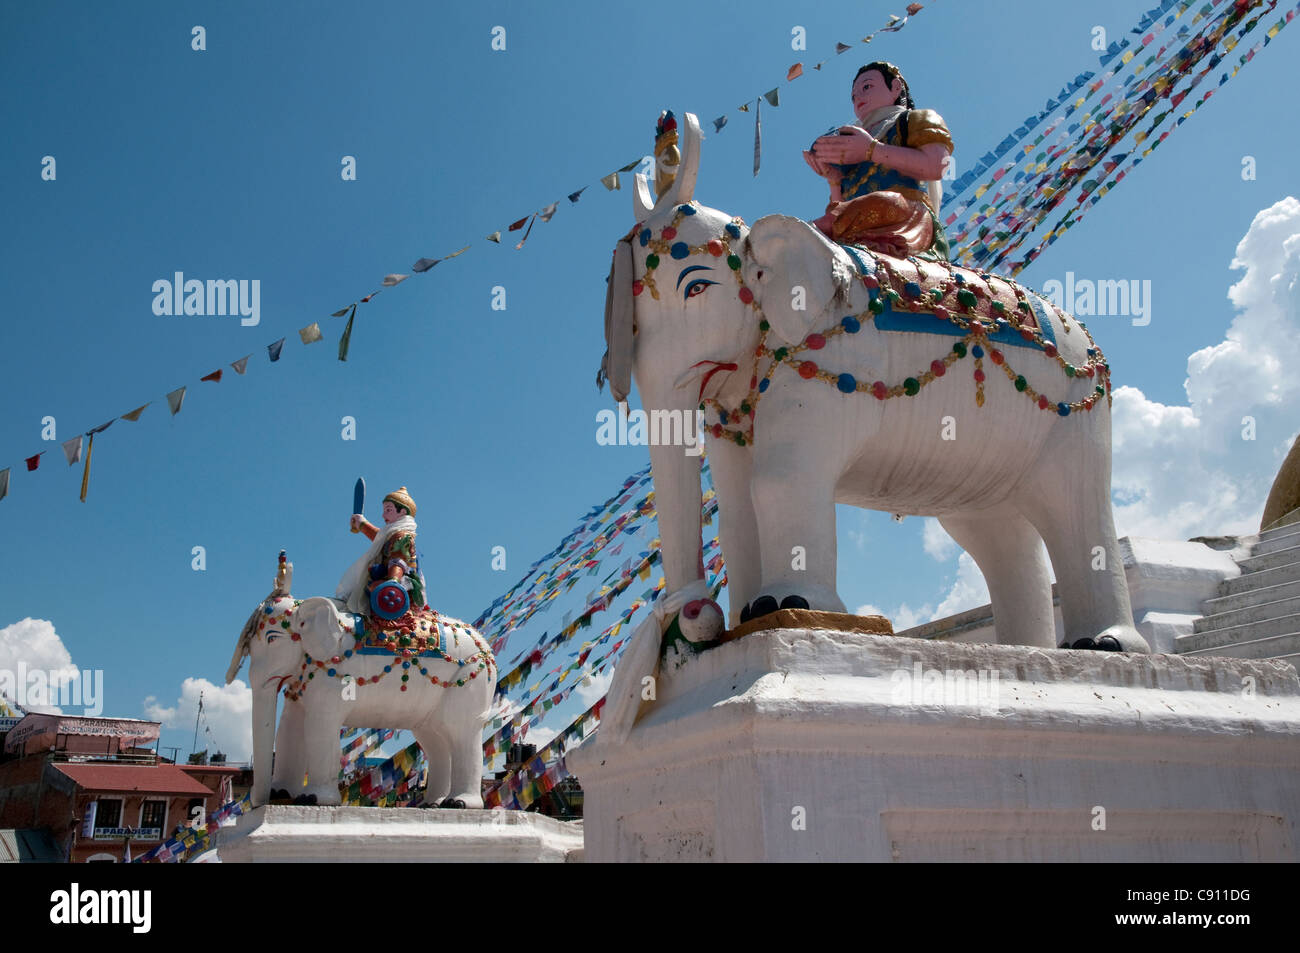 Boudhanath or Bodhnath temple is one of the holiest Buddhist sites in Kathmandu and a UNESCO world heritage site. - Stock Image